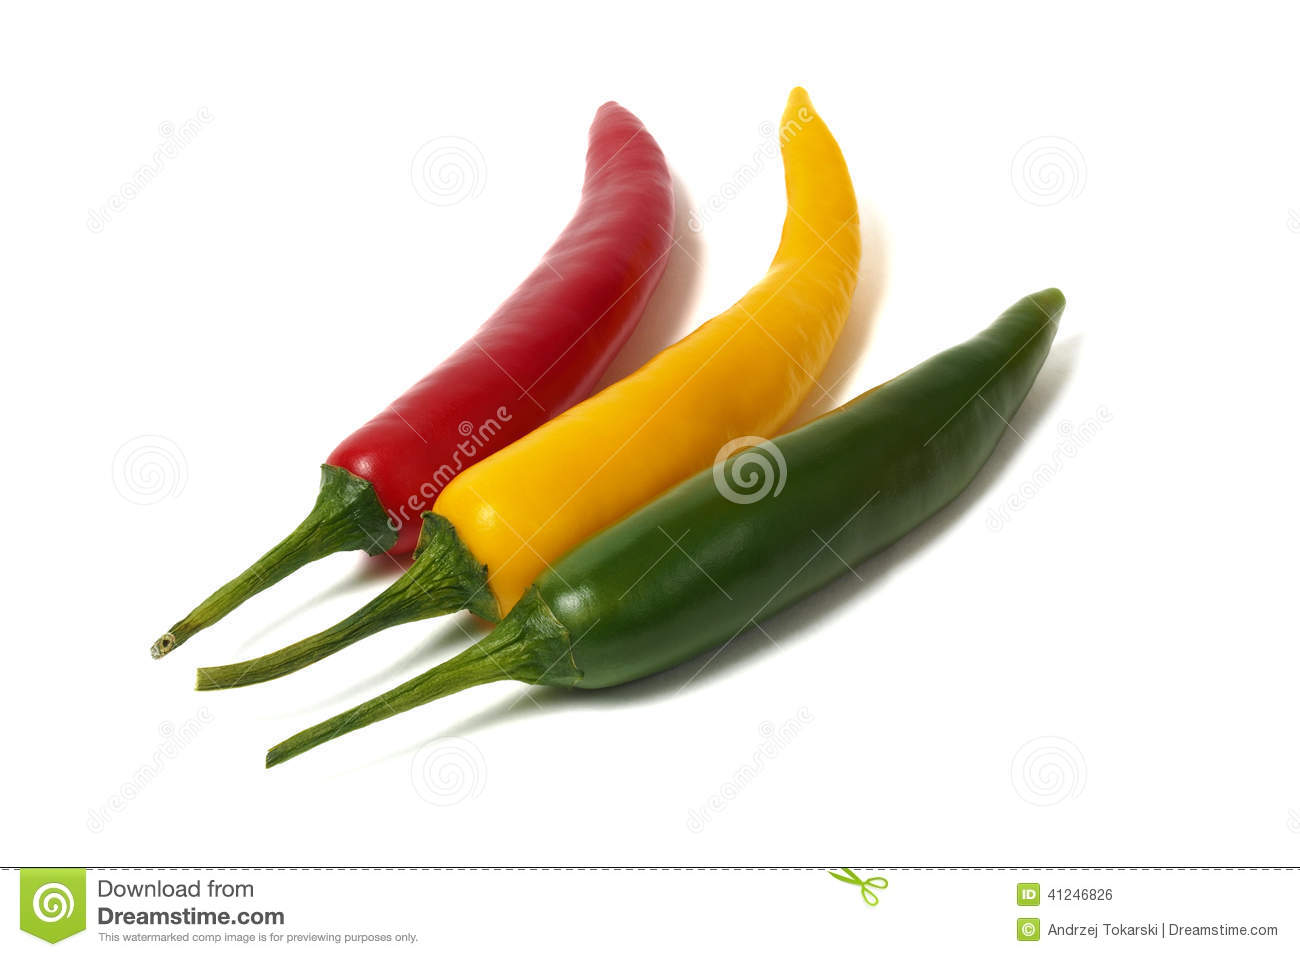 Red, green and yellow hot chili pepper isolated on white background.